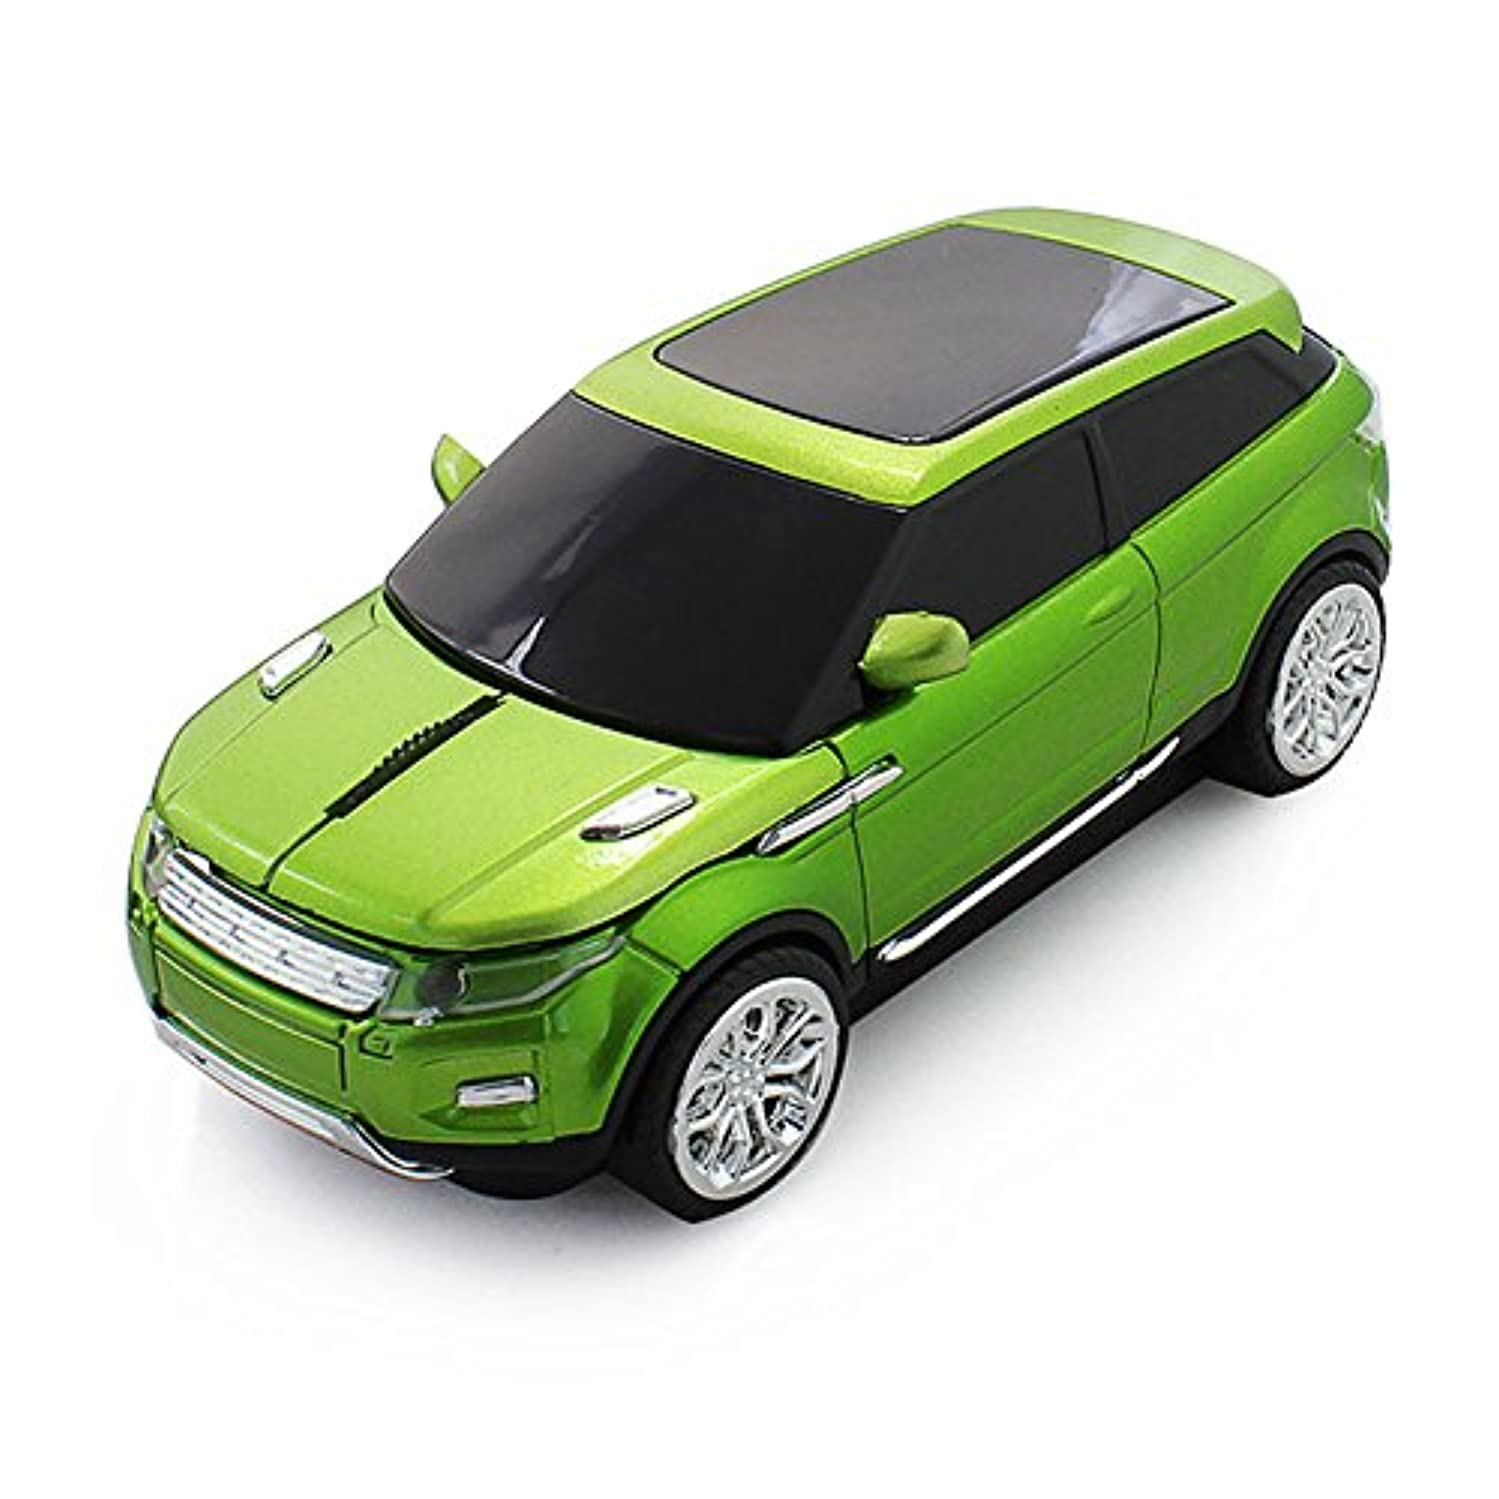 CHUYI 2.4GHz Wireless Mouse Cool Sport SUV Car Shape Optical Mouse 1600DPI SUV Gaming Mice with USB Receiver for PC Computer Laptop (Green)